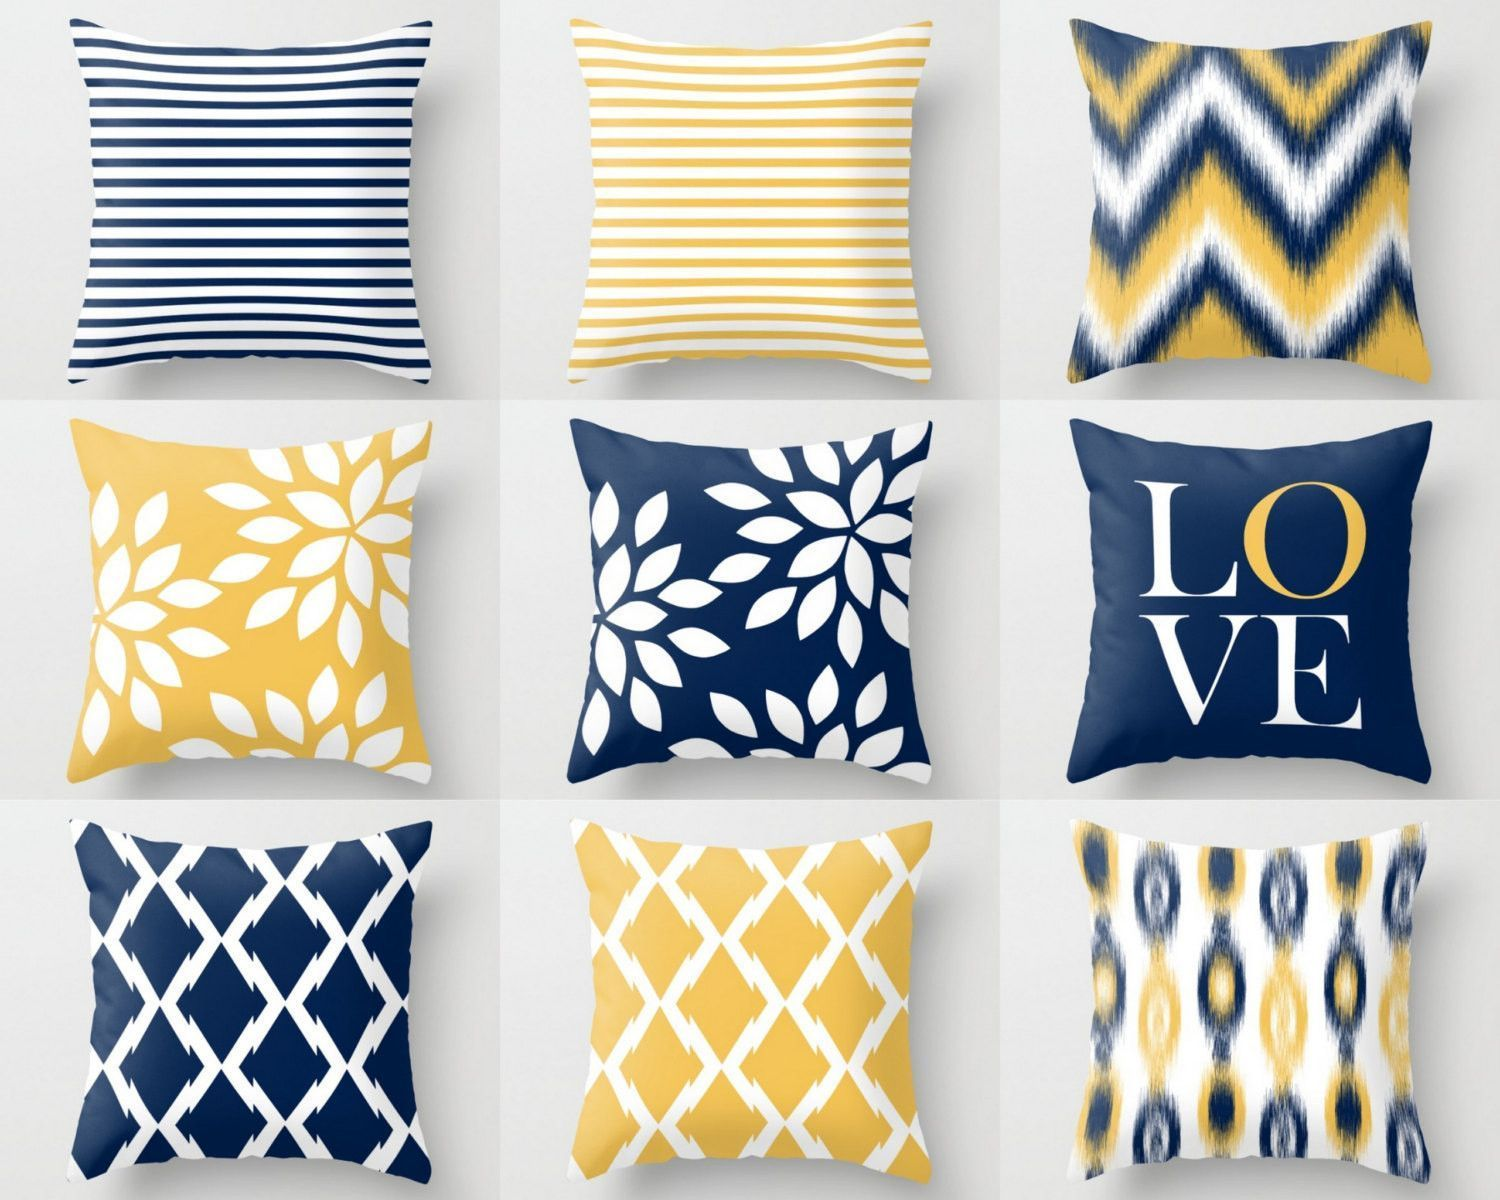 Awesome Tips Decorative Pillows Couch Ottomans Decorative Pillows Couch Tips Decorative Pillows For Throw Pillow Cover Navy Yellow Living Room Yellow Pillows